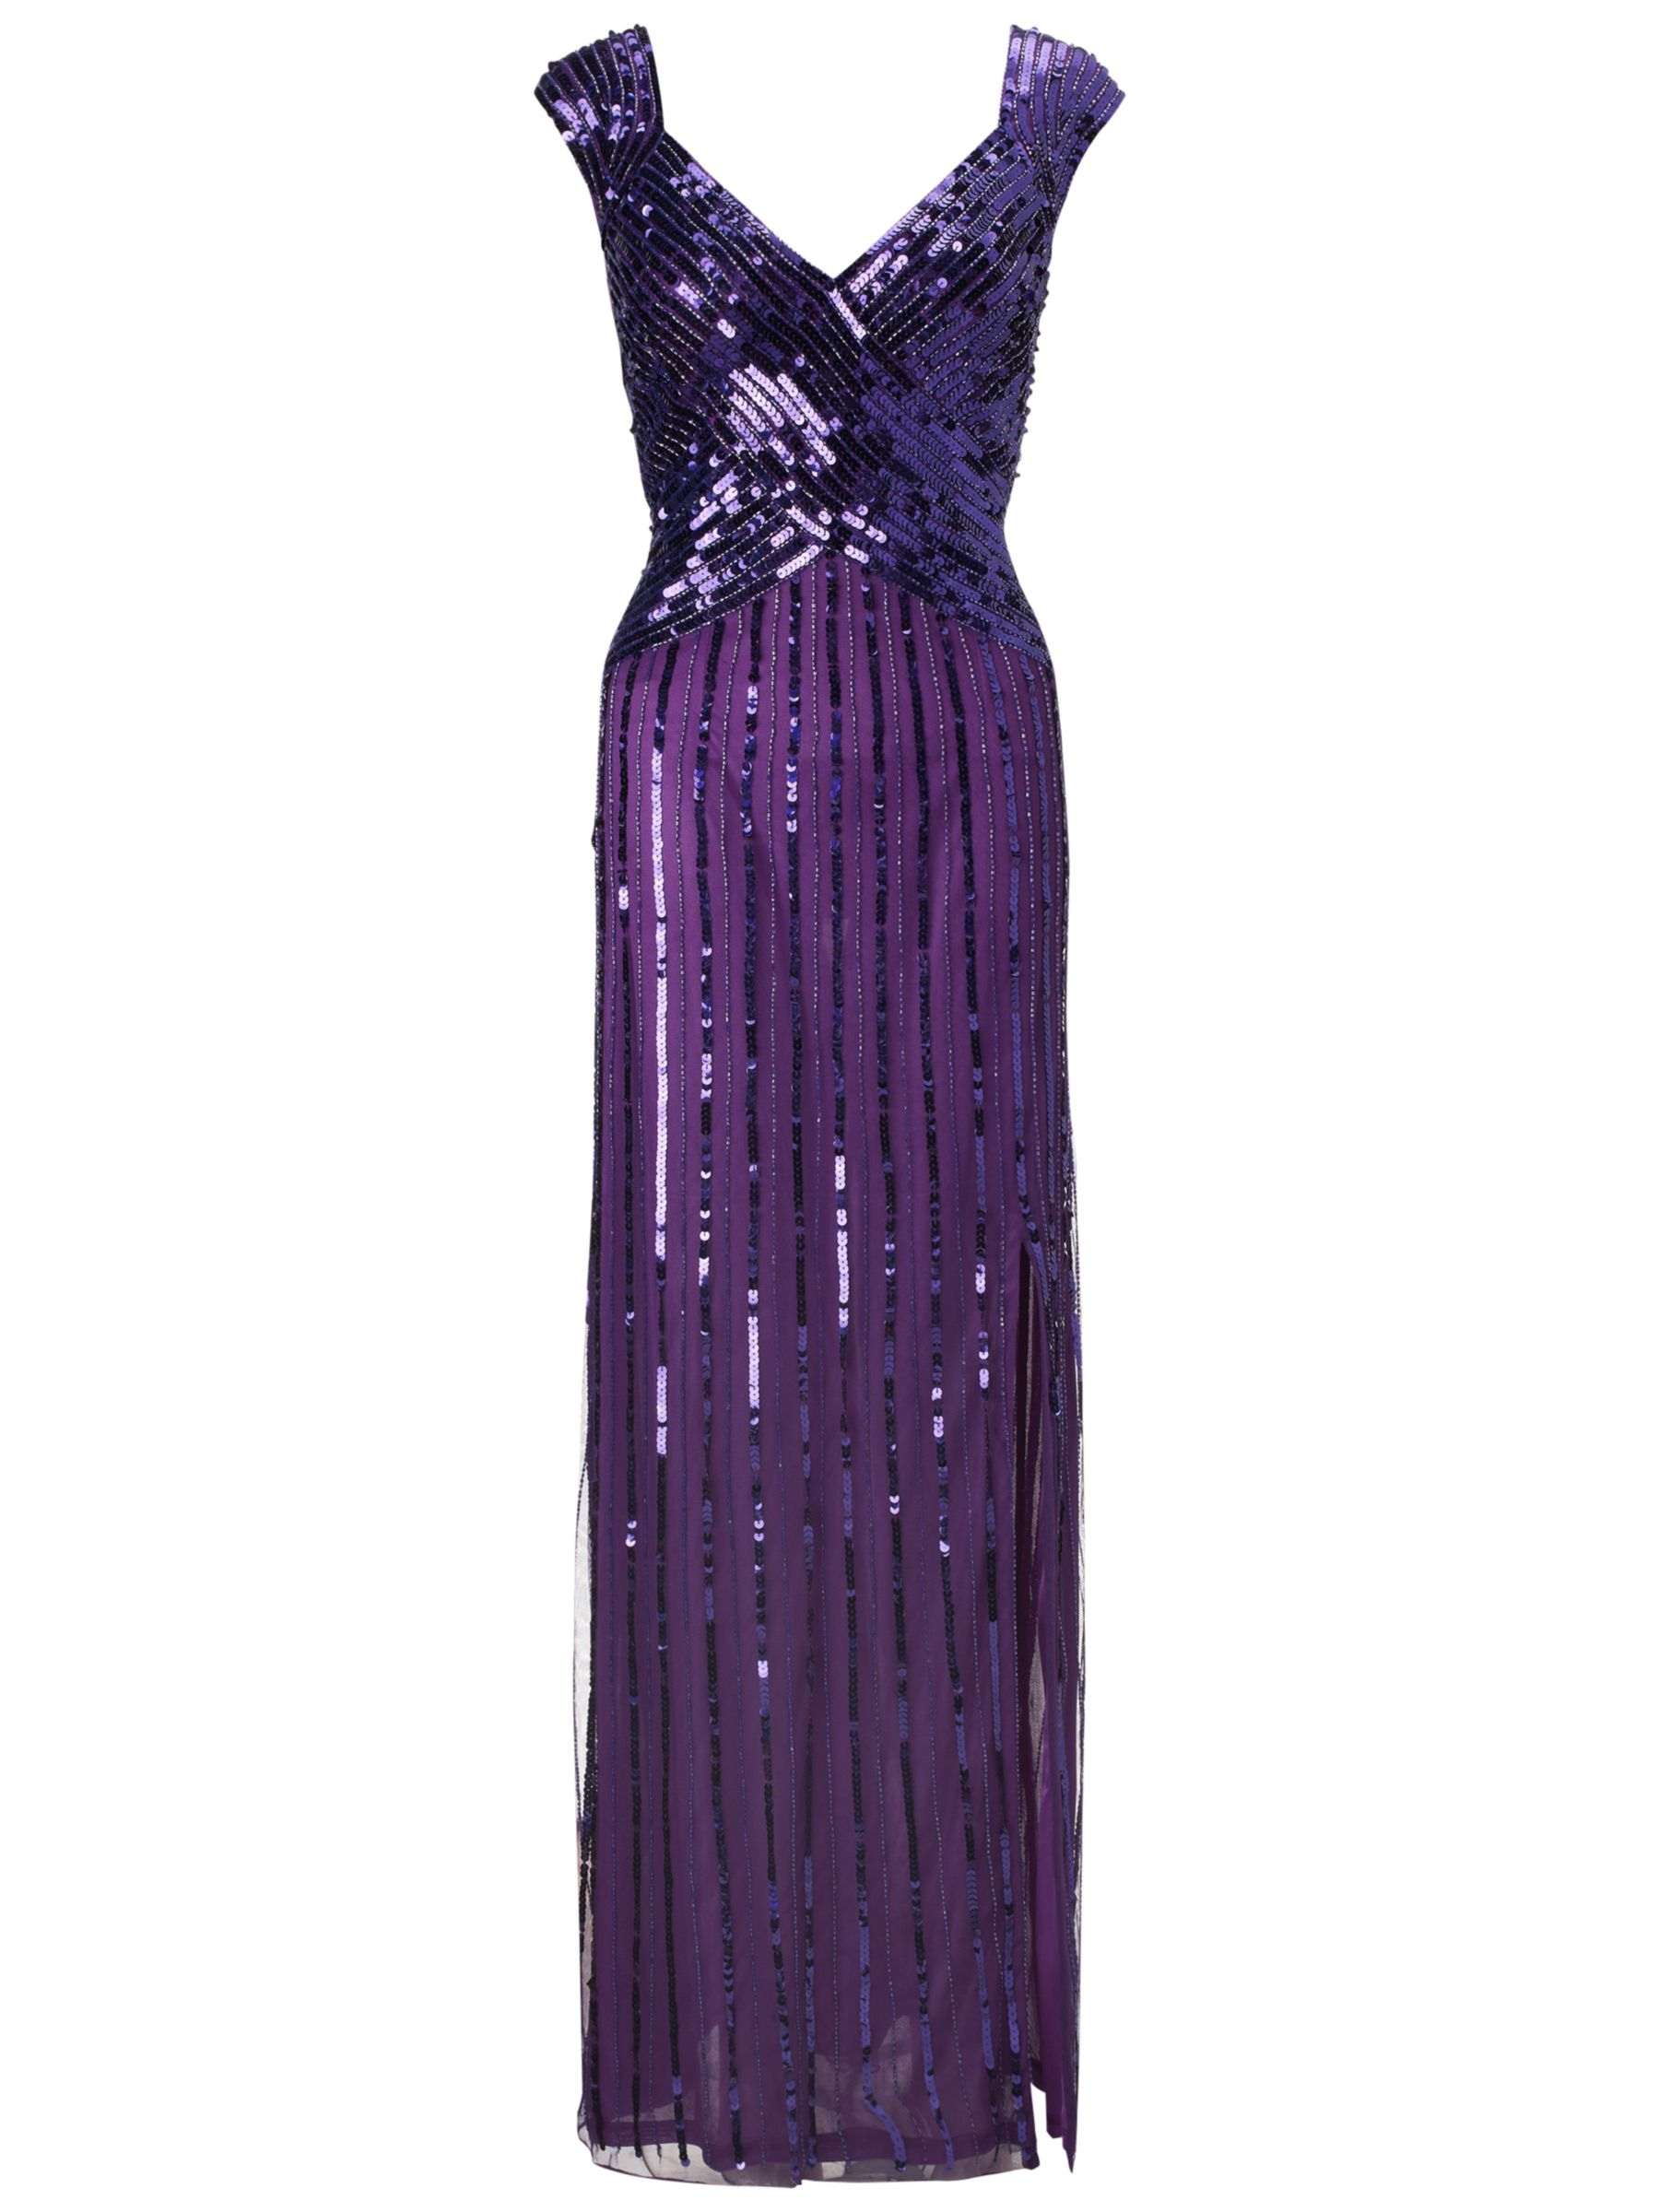 ariella samantha sequin maxi dress purple, ariella, samantha, sequin, maxi, dress, purple, 18|14|12|16|10|8, clearance, womenswear offers, womens dresses offers, new years party offers, women, inactive womenswear, new reductions, womens dresses, party outfits, evening gowns, special offers, edition magazine, embellishment, 1697324